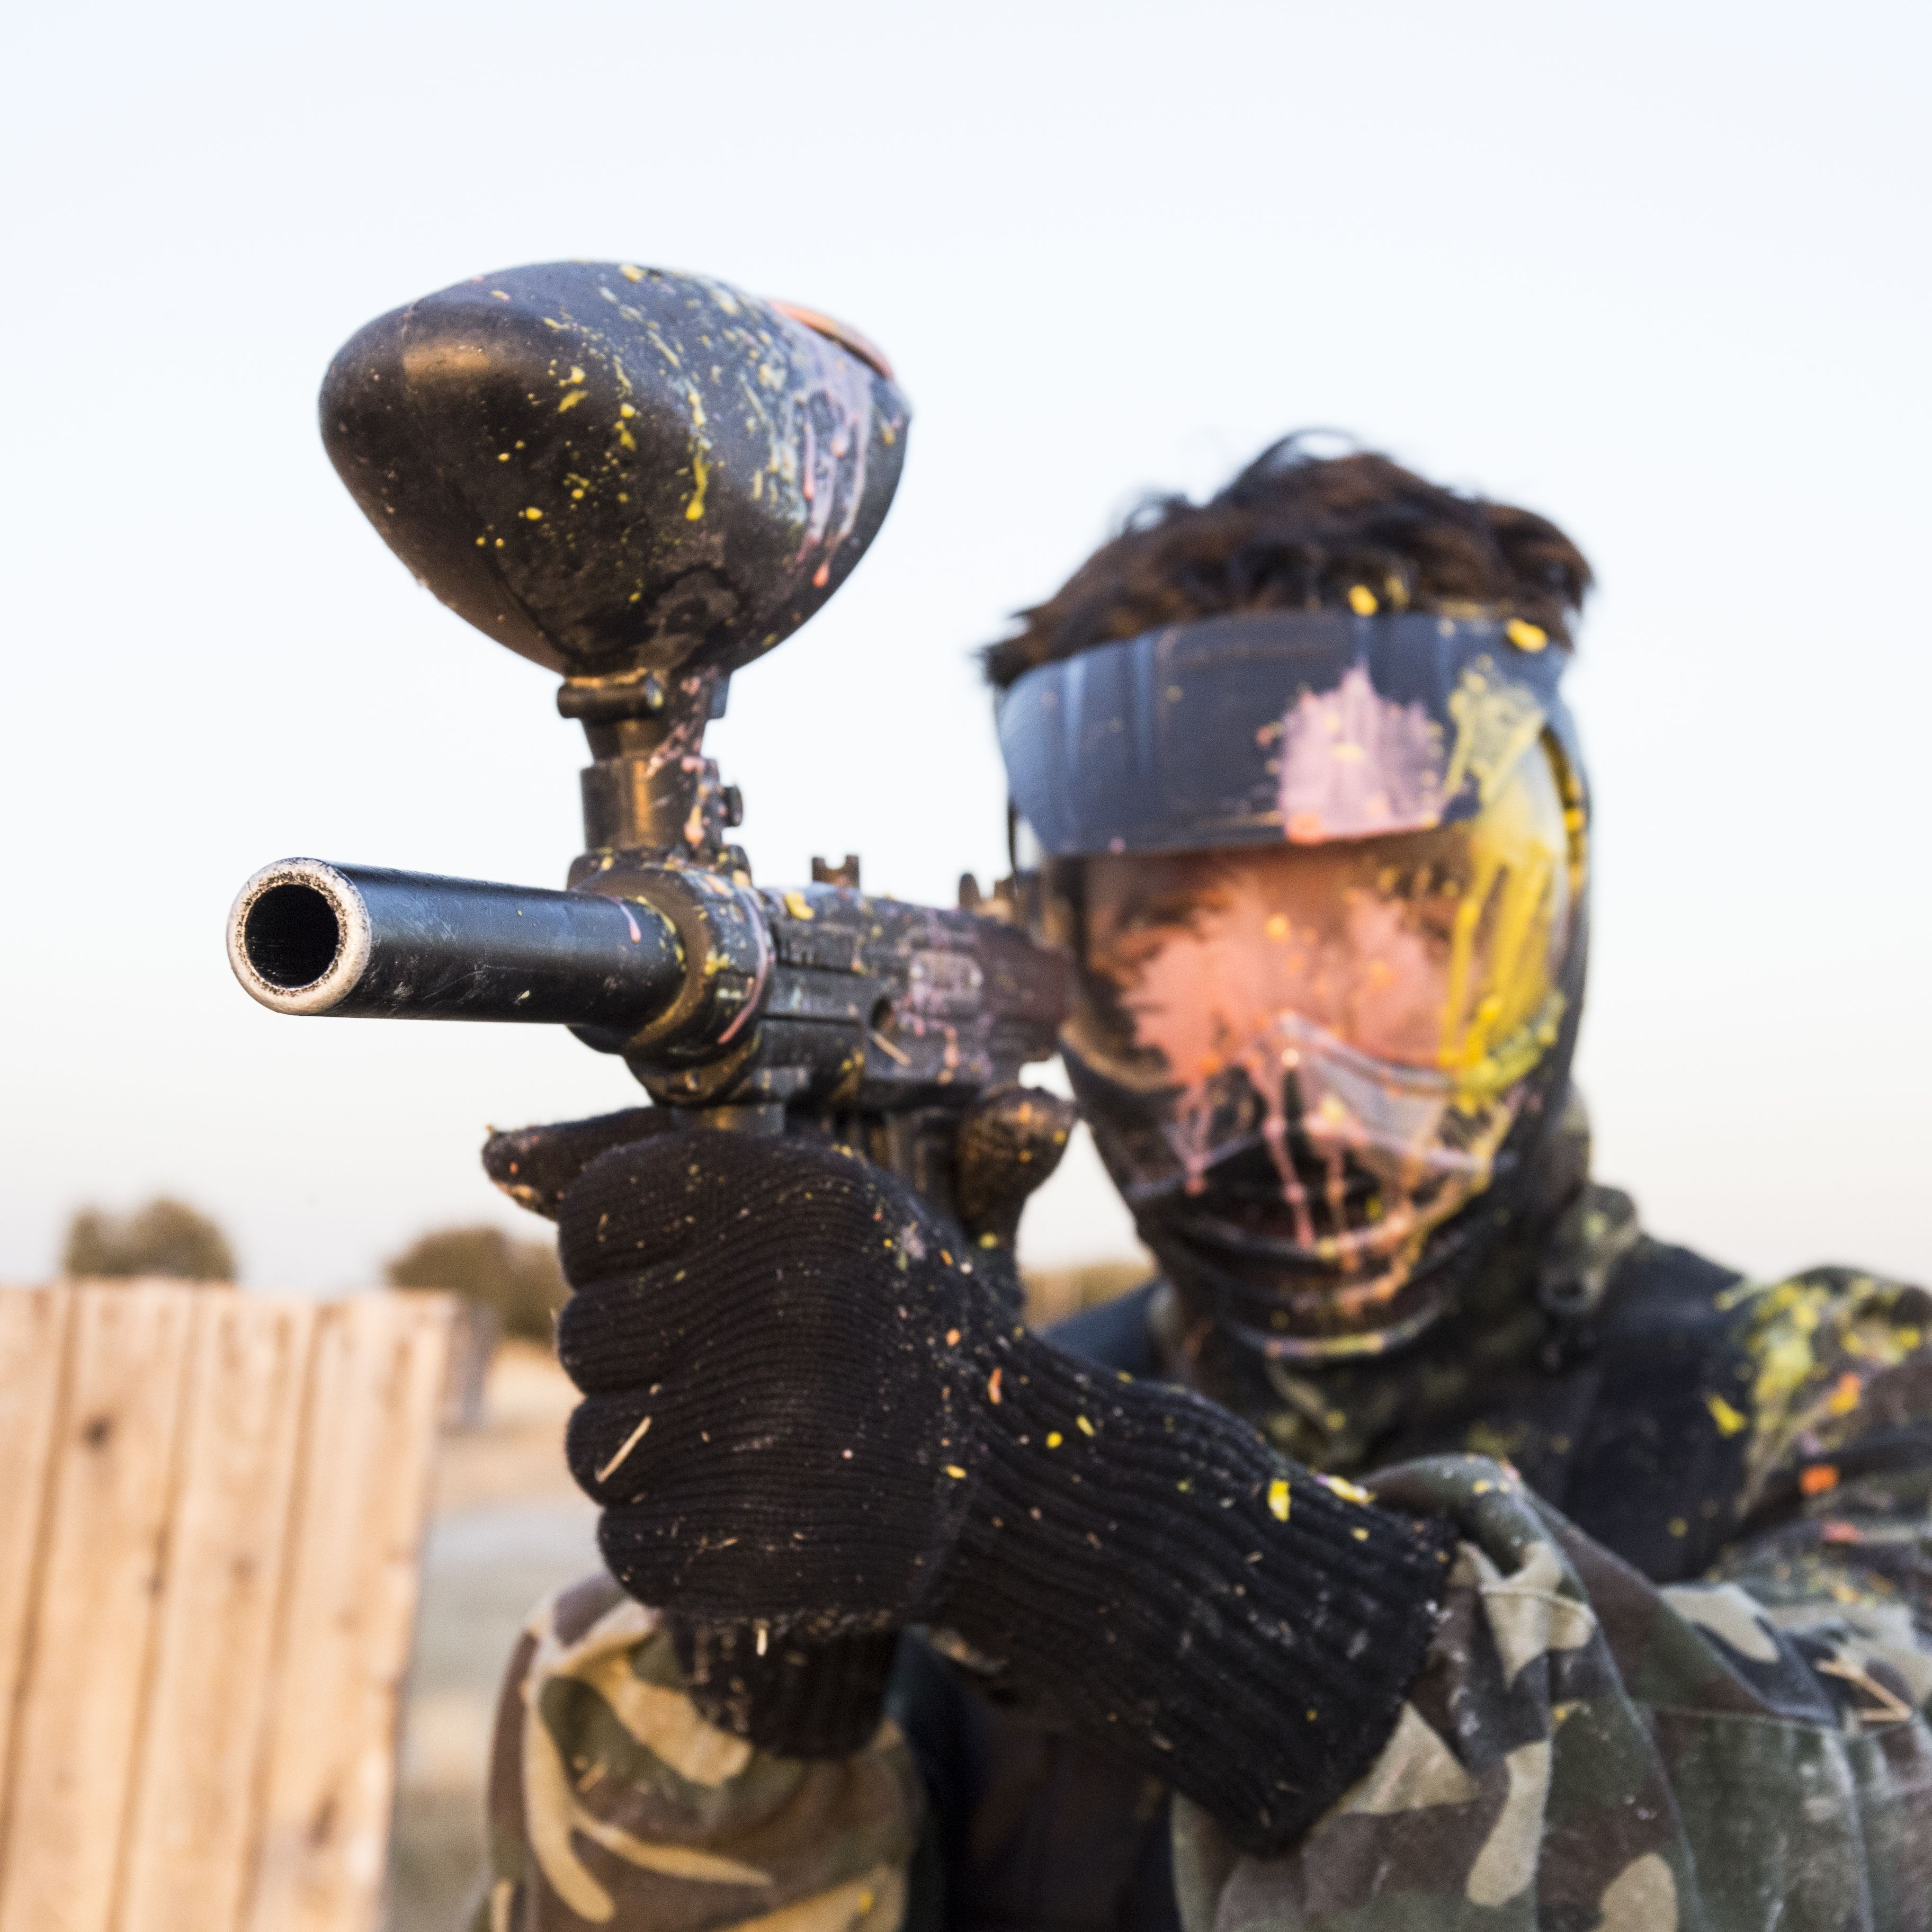 Where Can You Fill Compressed Air Tanks For Paintball